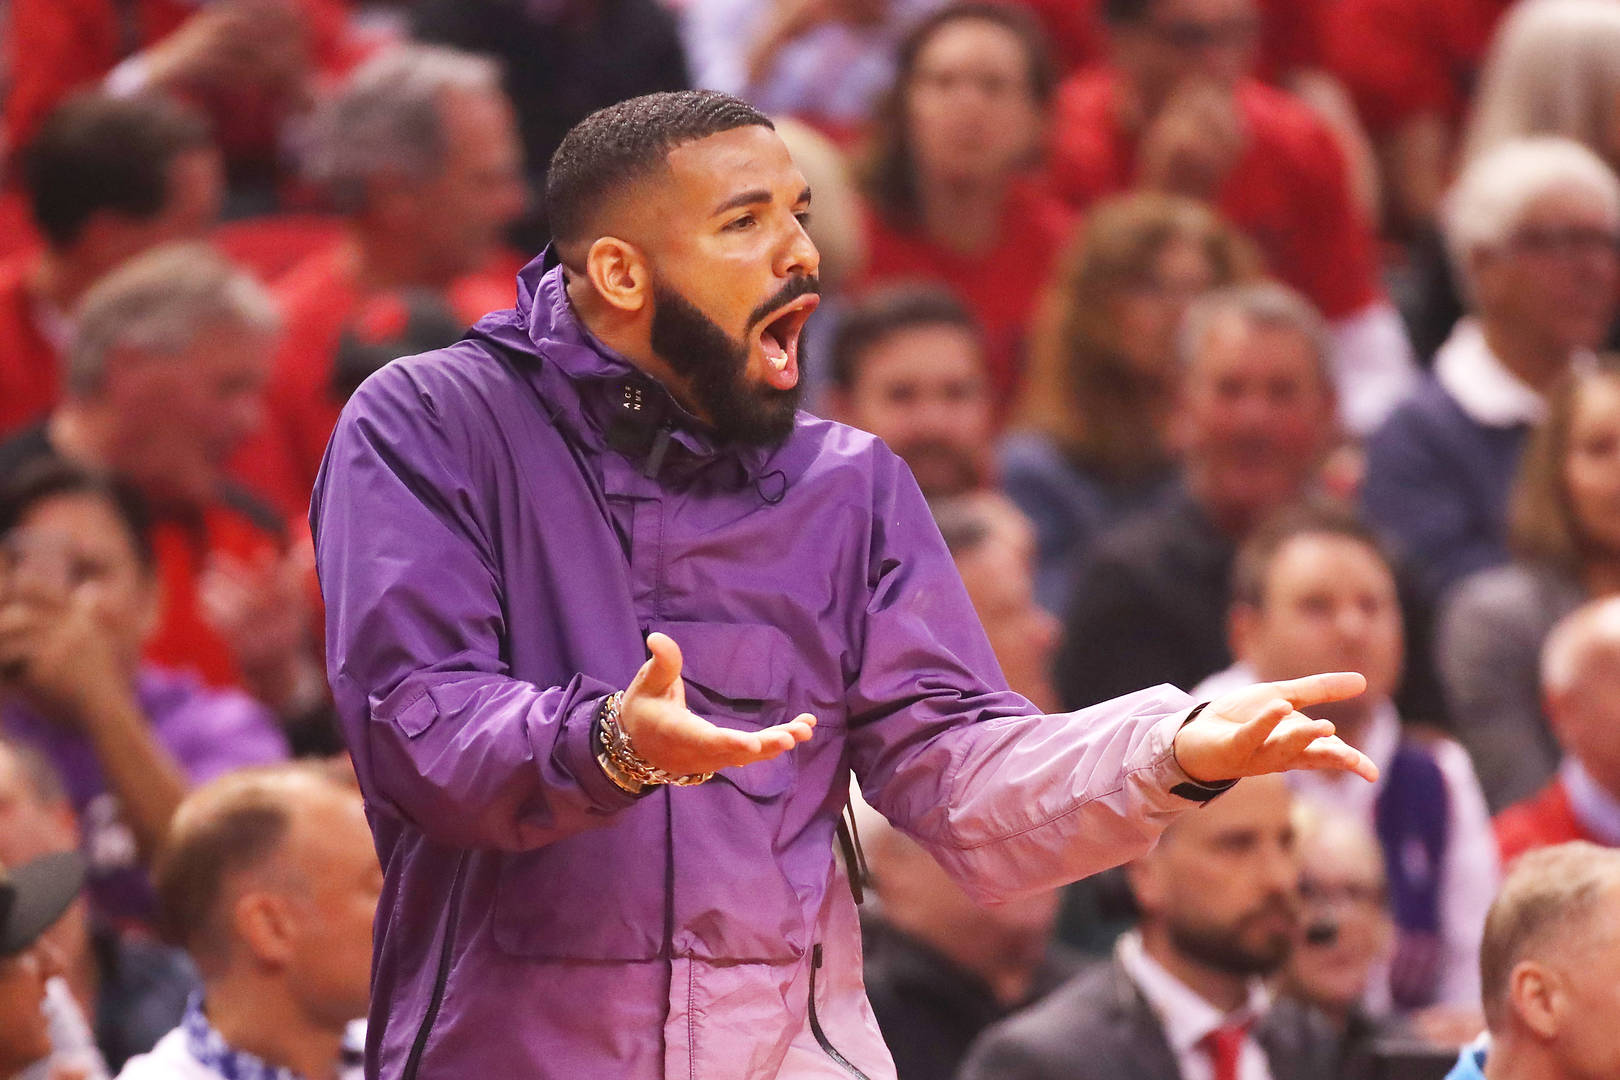 If Drake Court-side Bothers You, You're A Loser